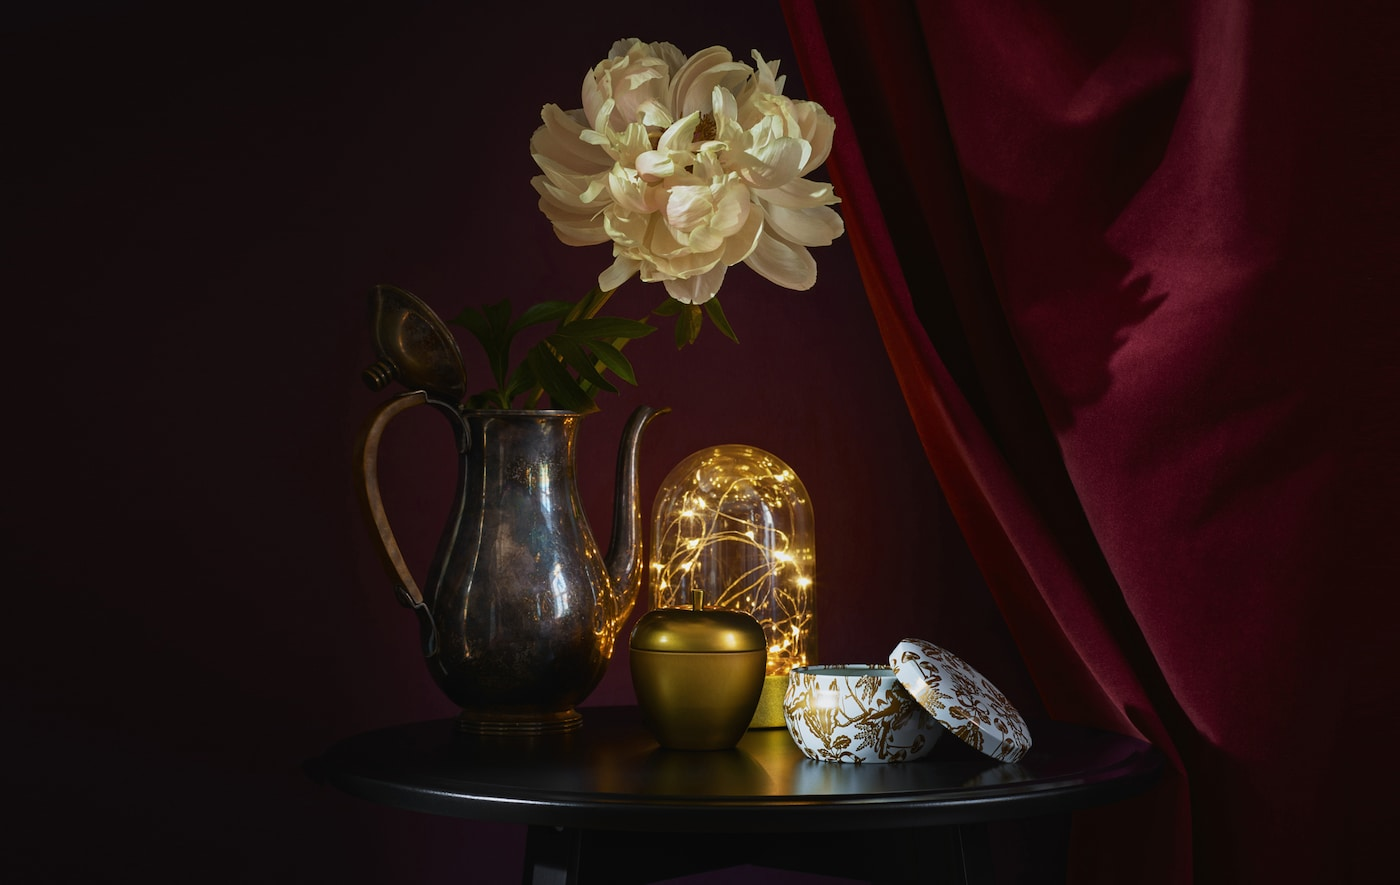 Gold accessories and lighting on a round table against a dark red backdrop.